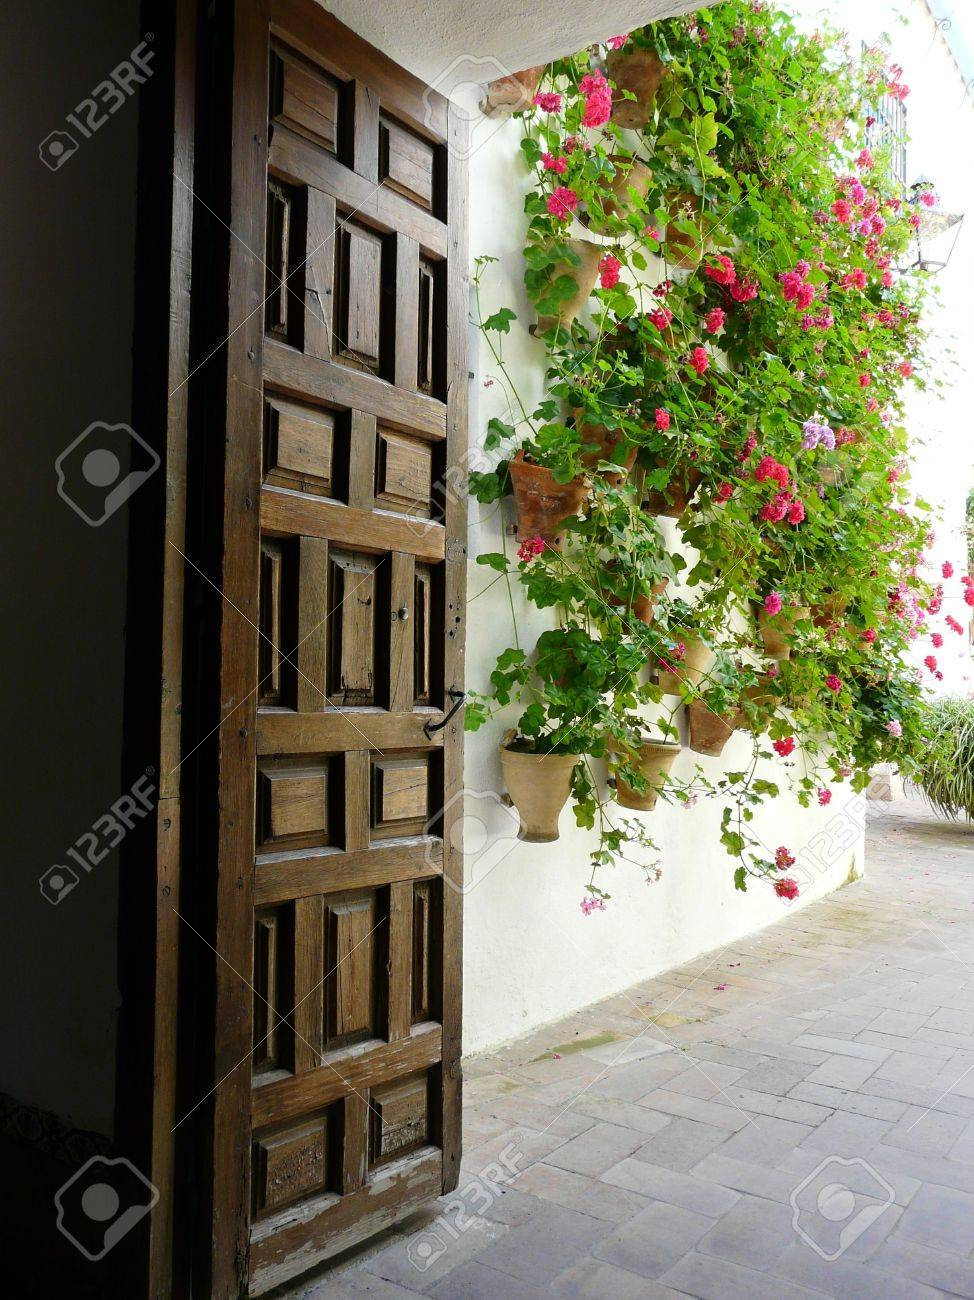 Old wooden doorway and courtyard with geraniums at the Palacio de Viana in Cordoba, Spain Stock Photo - 7302286